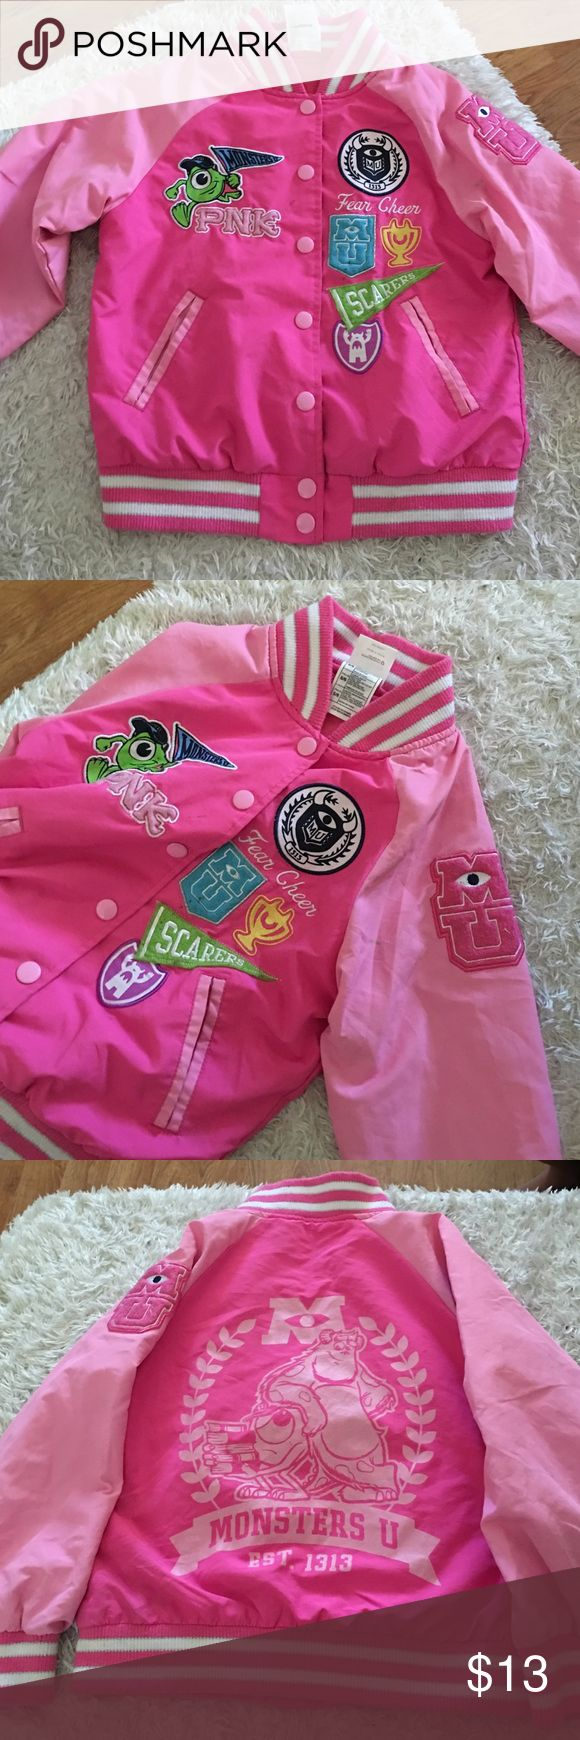 Monsters Inc Girls Jacket Pink monsters inc cheer jacket! Disney store size 5/6 limited Edition good condition! Disney Store Jackets & Coats